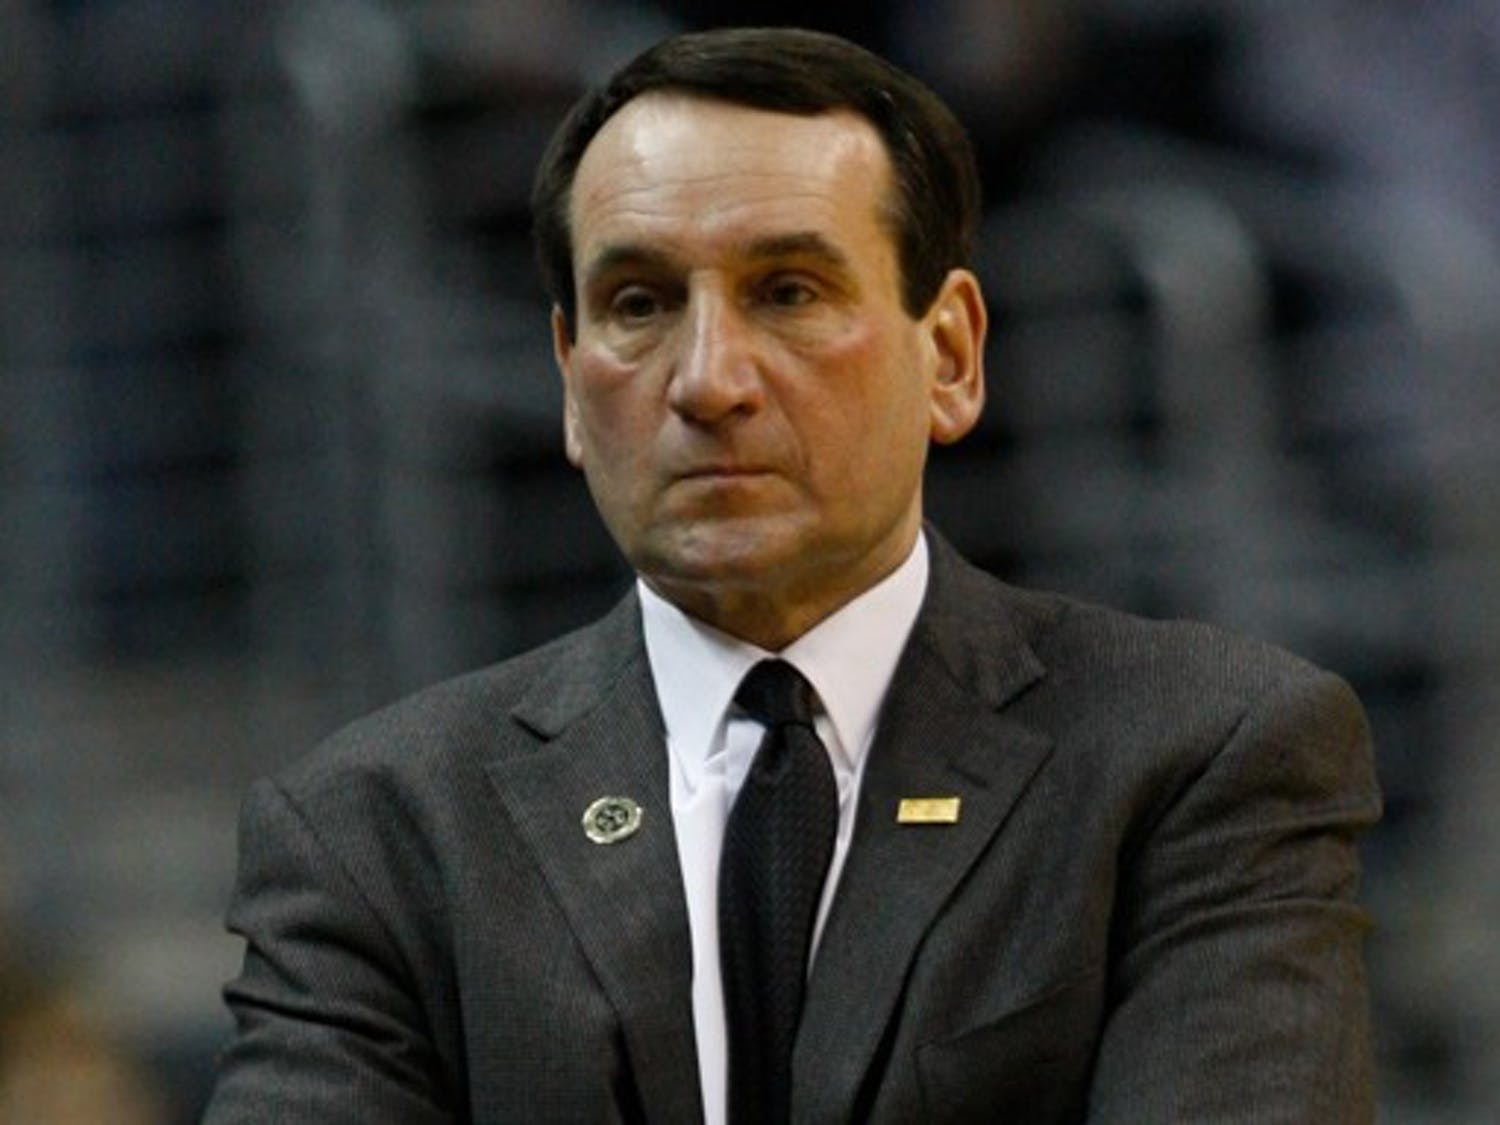 Coach K is just one of the many figures on campus that Ben Cohen has interacted with in the last four years.